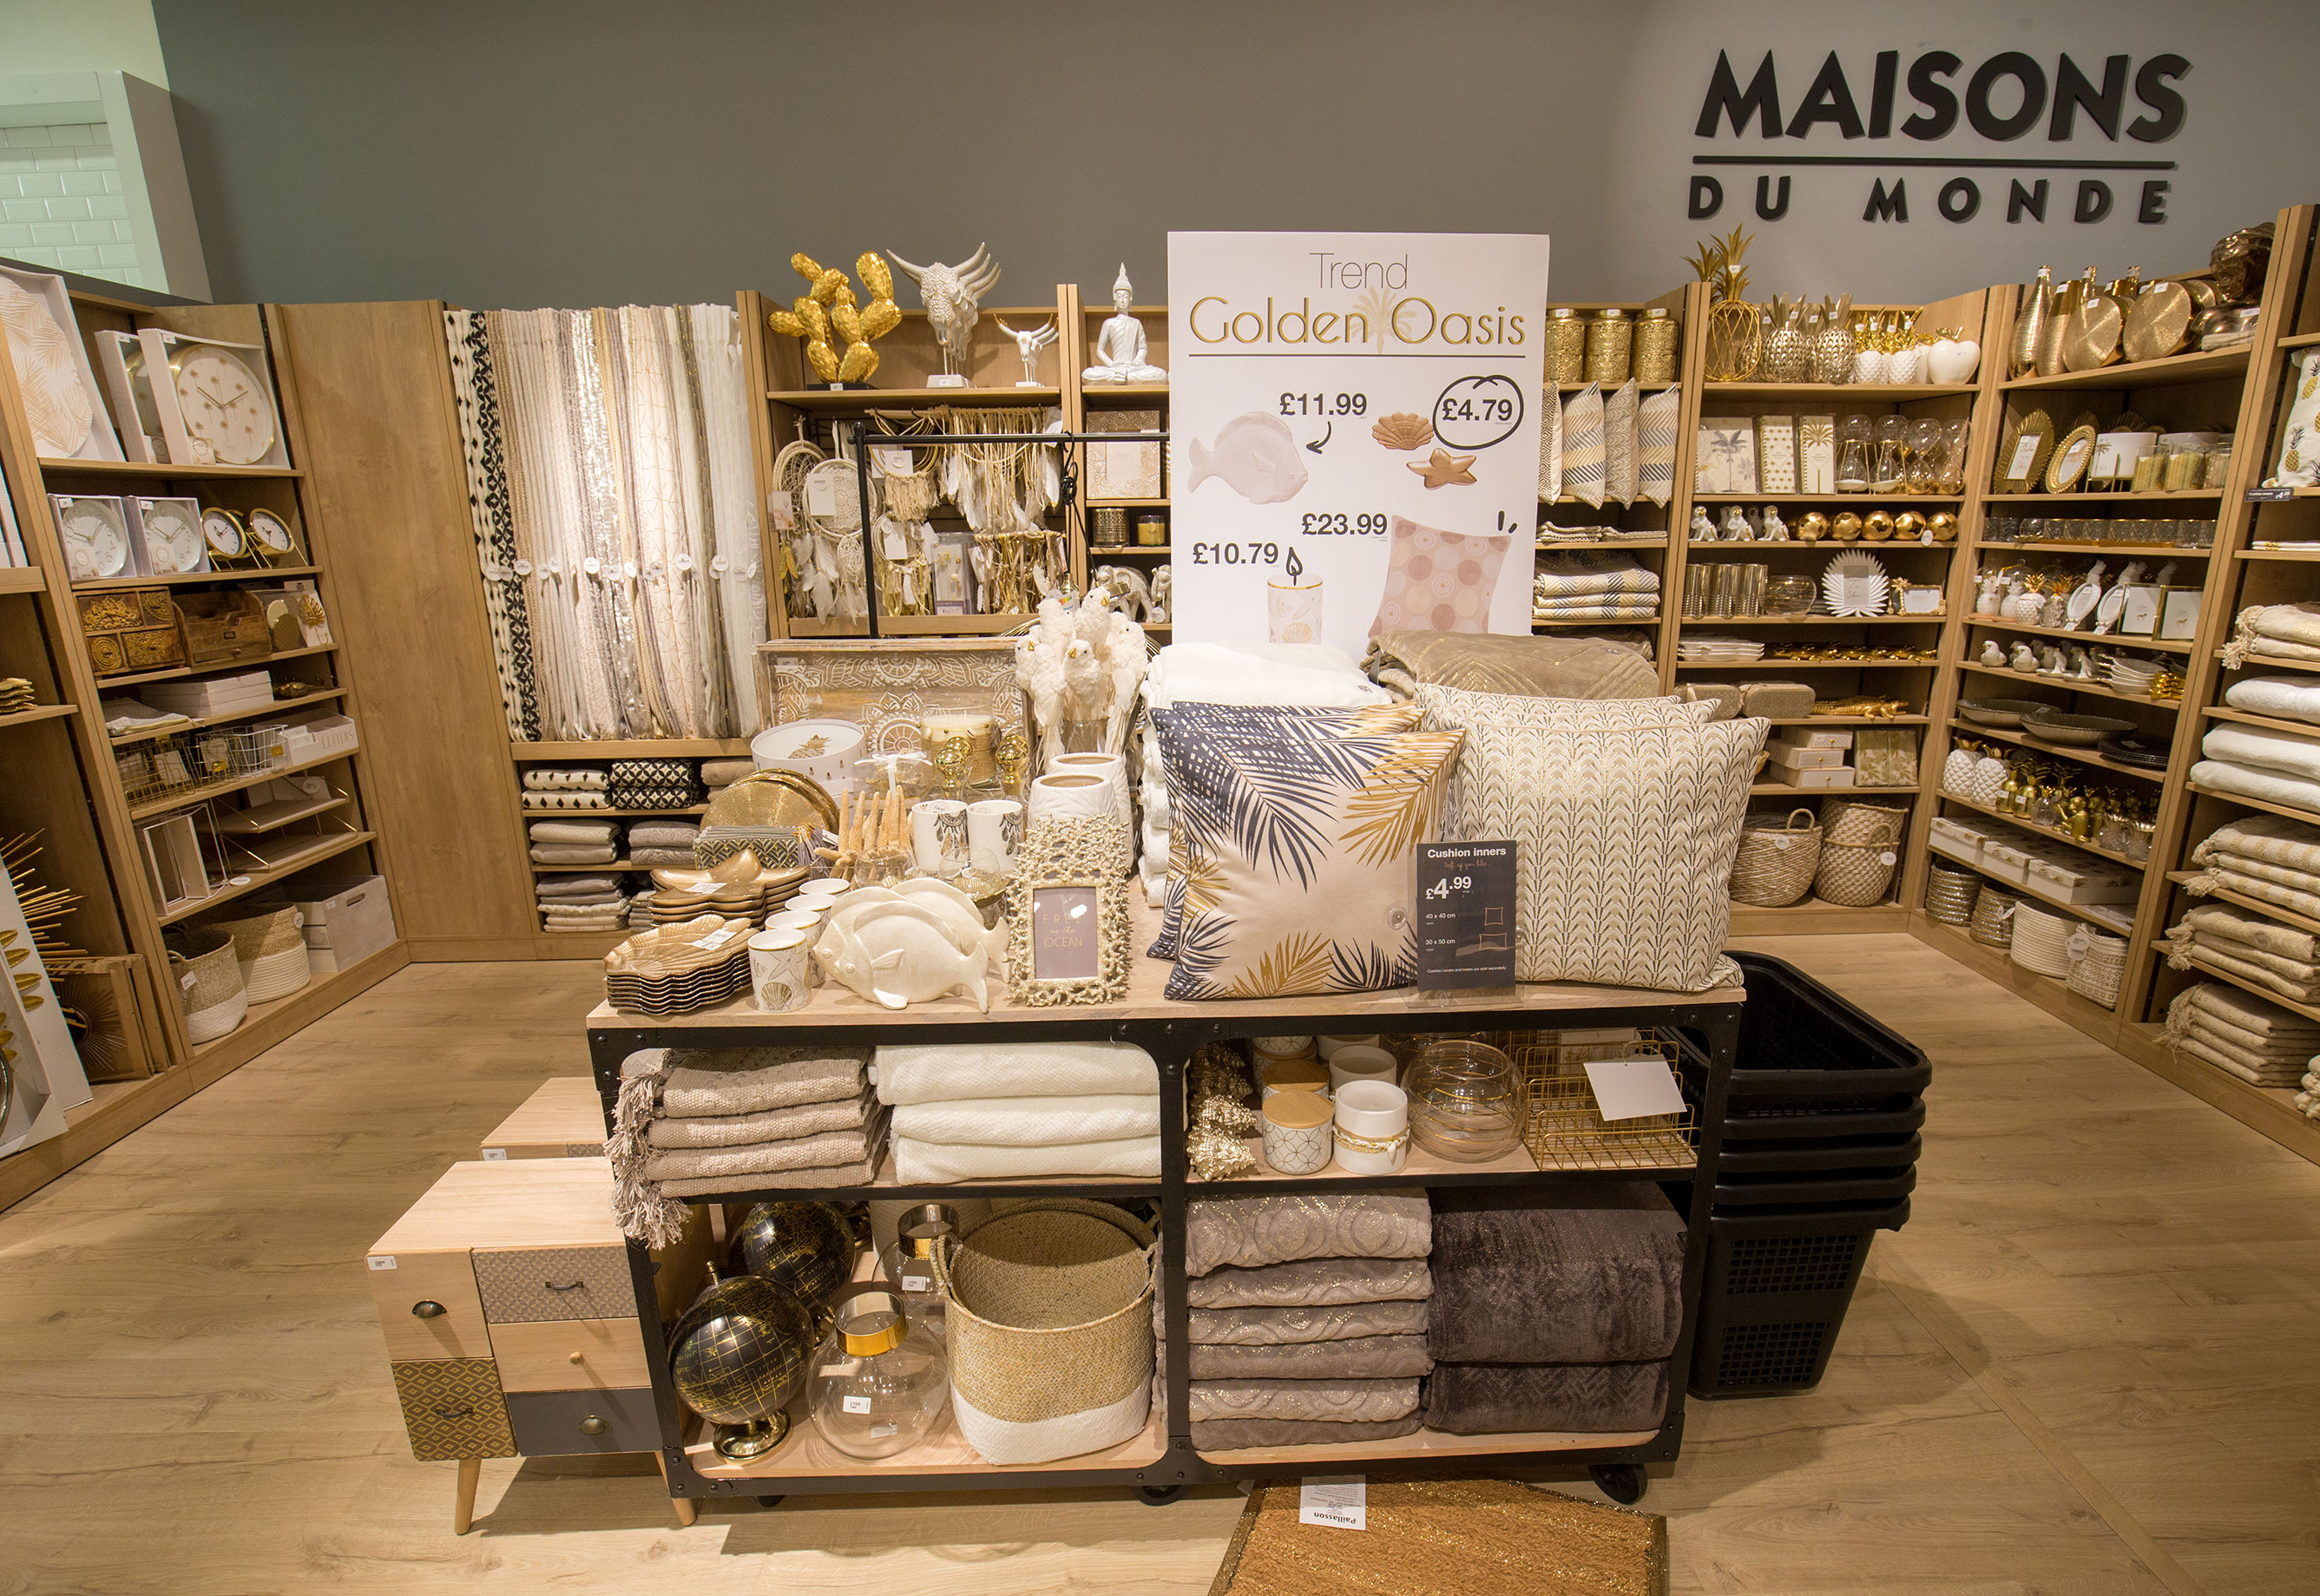 Maisons du monde opened 3 concessions in london westfield for Maison du monde 83